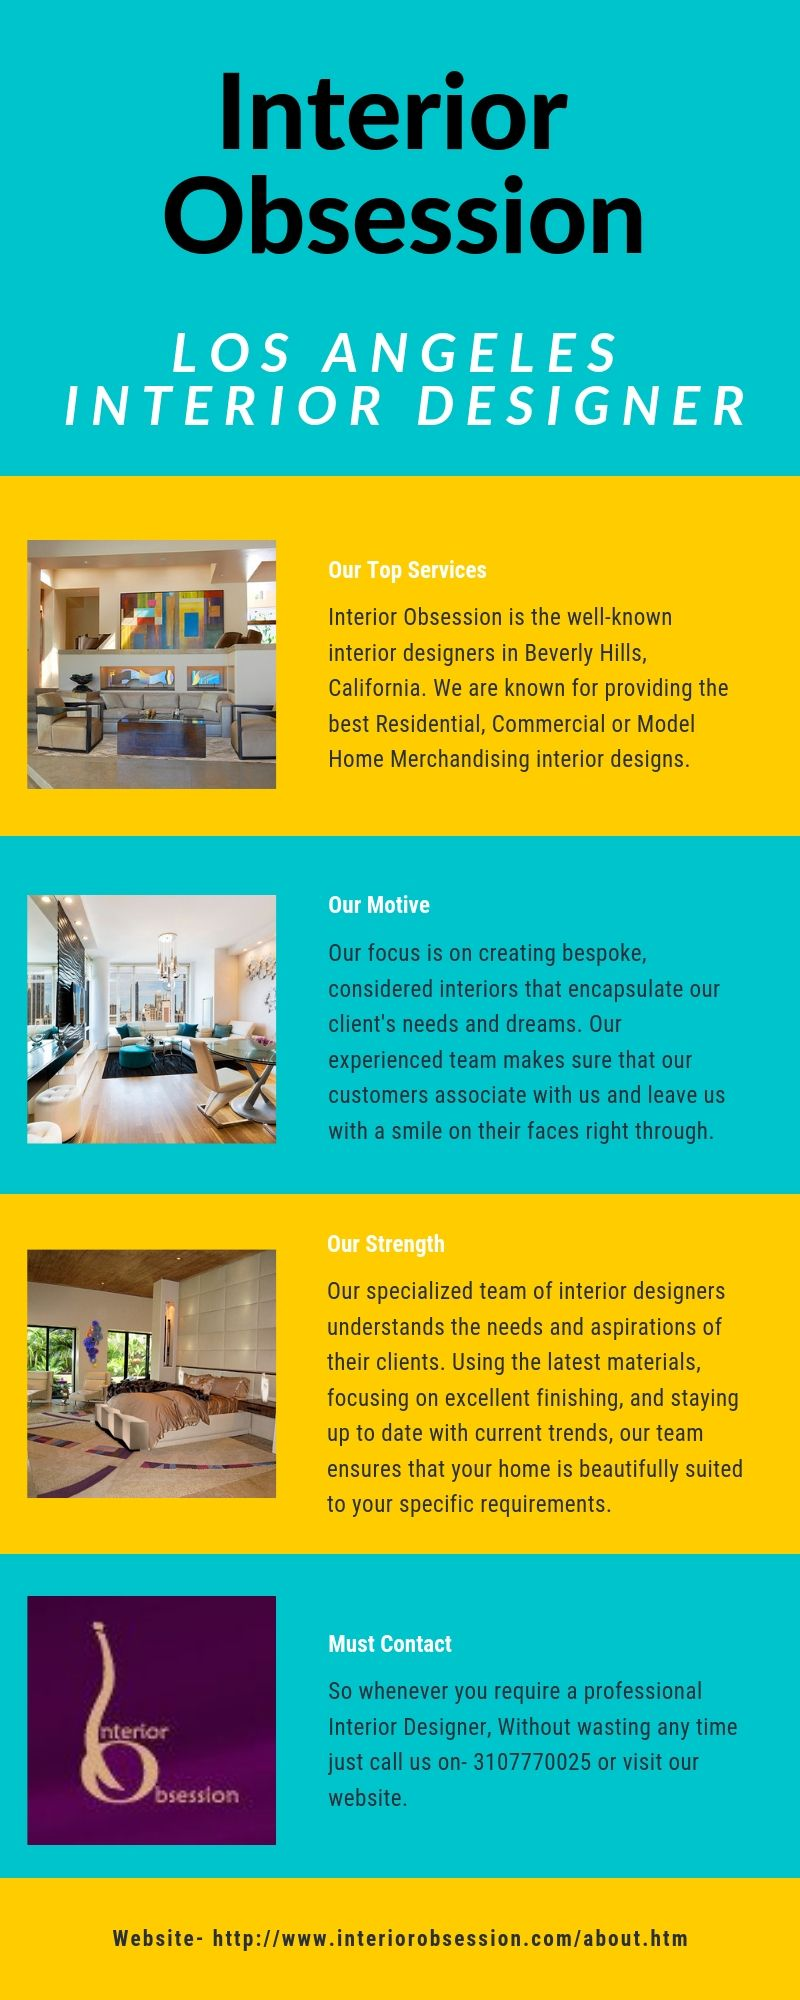 Interior obsession is known for providing the best design services in usa we specialize transforming spaces into  reflection of your also rh pinterest